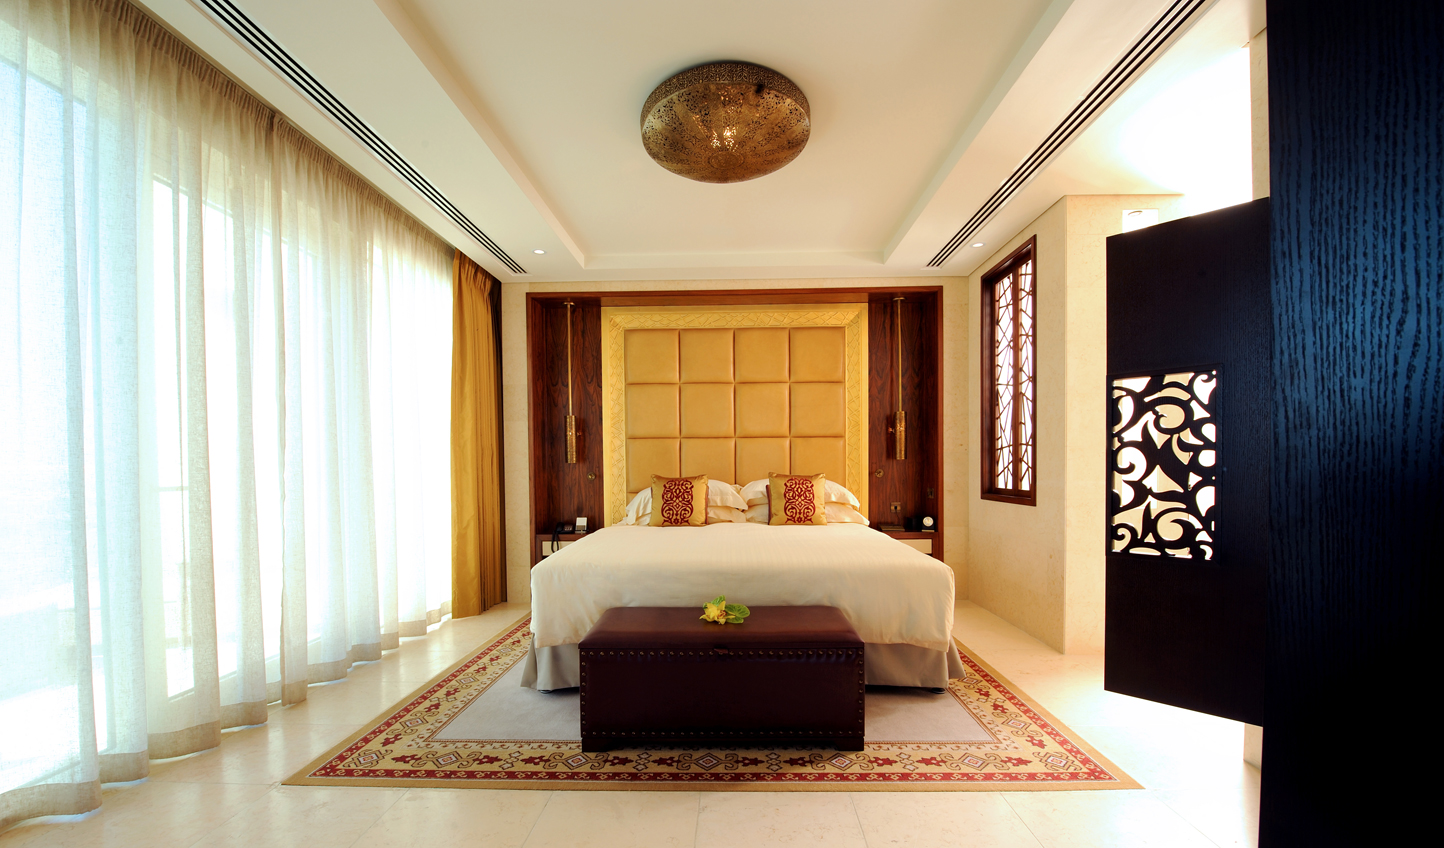 Relax in your spacious suite, decorated with Middle Eastern accents